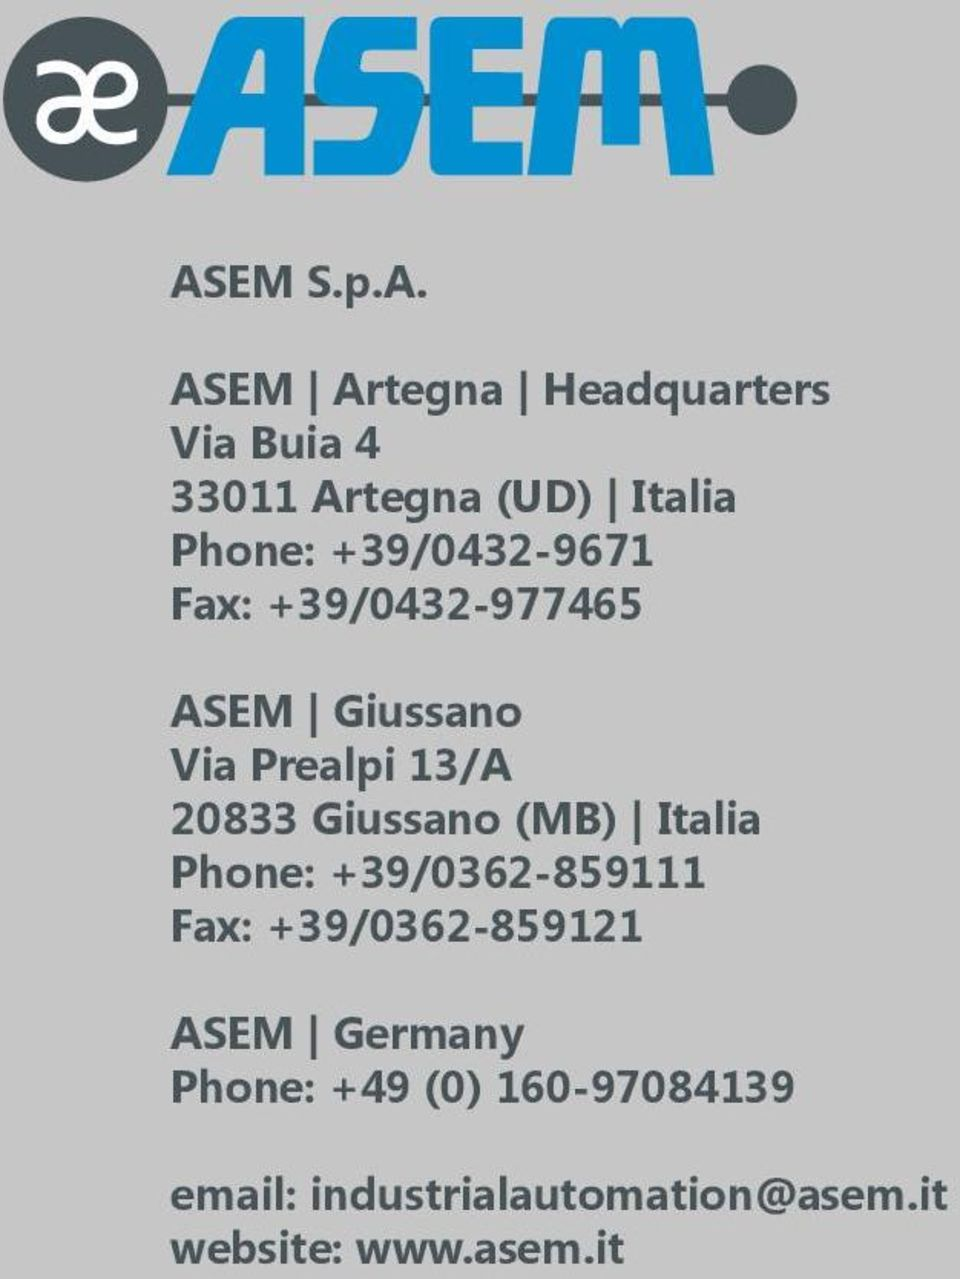 Giussano (MB) Italia Phone: +39/0362-859111 Fax: +39/0362-859121 ASEM Germany